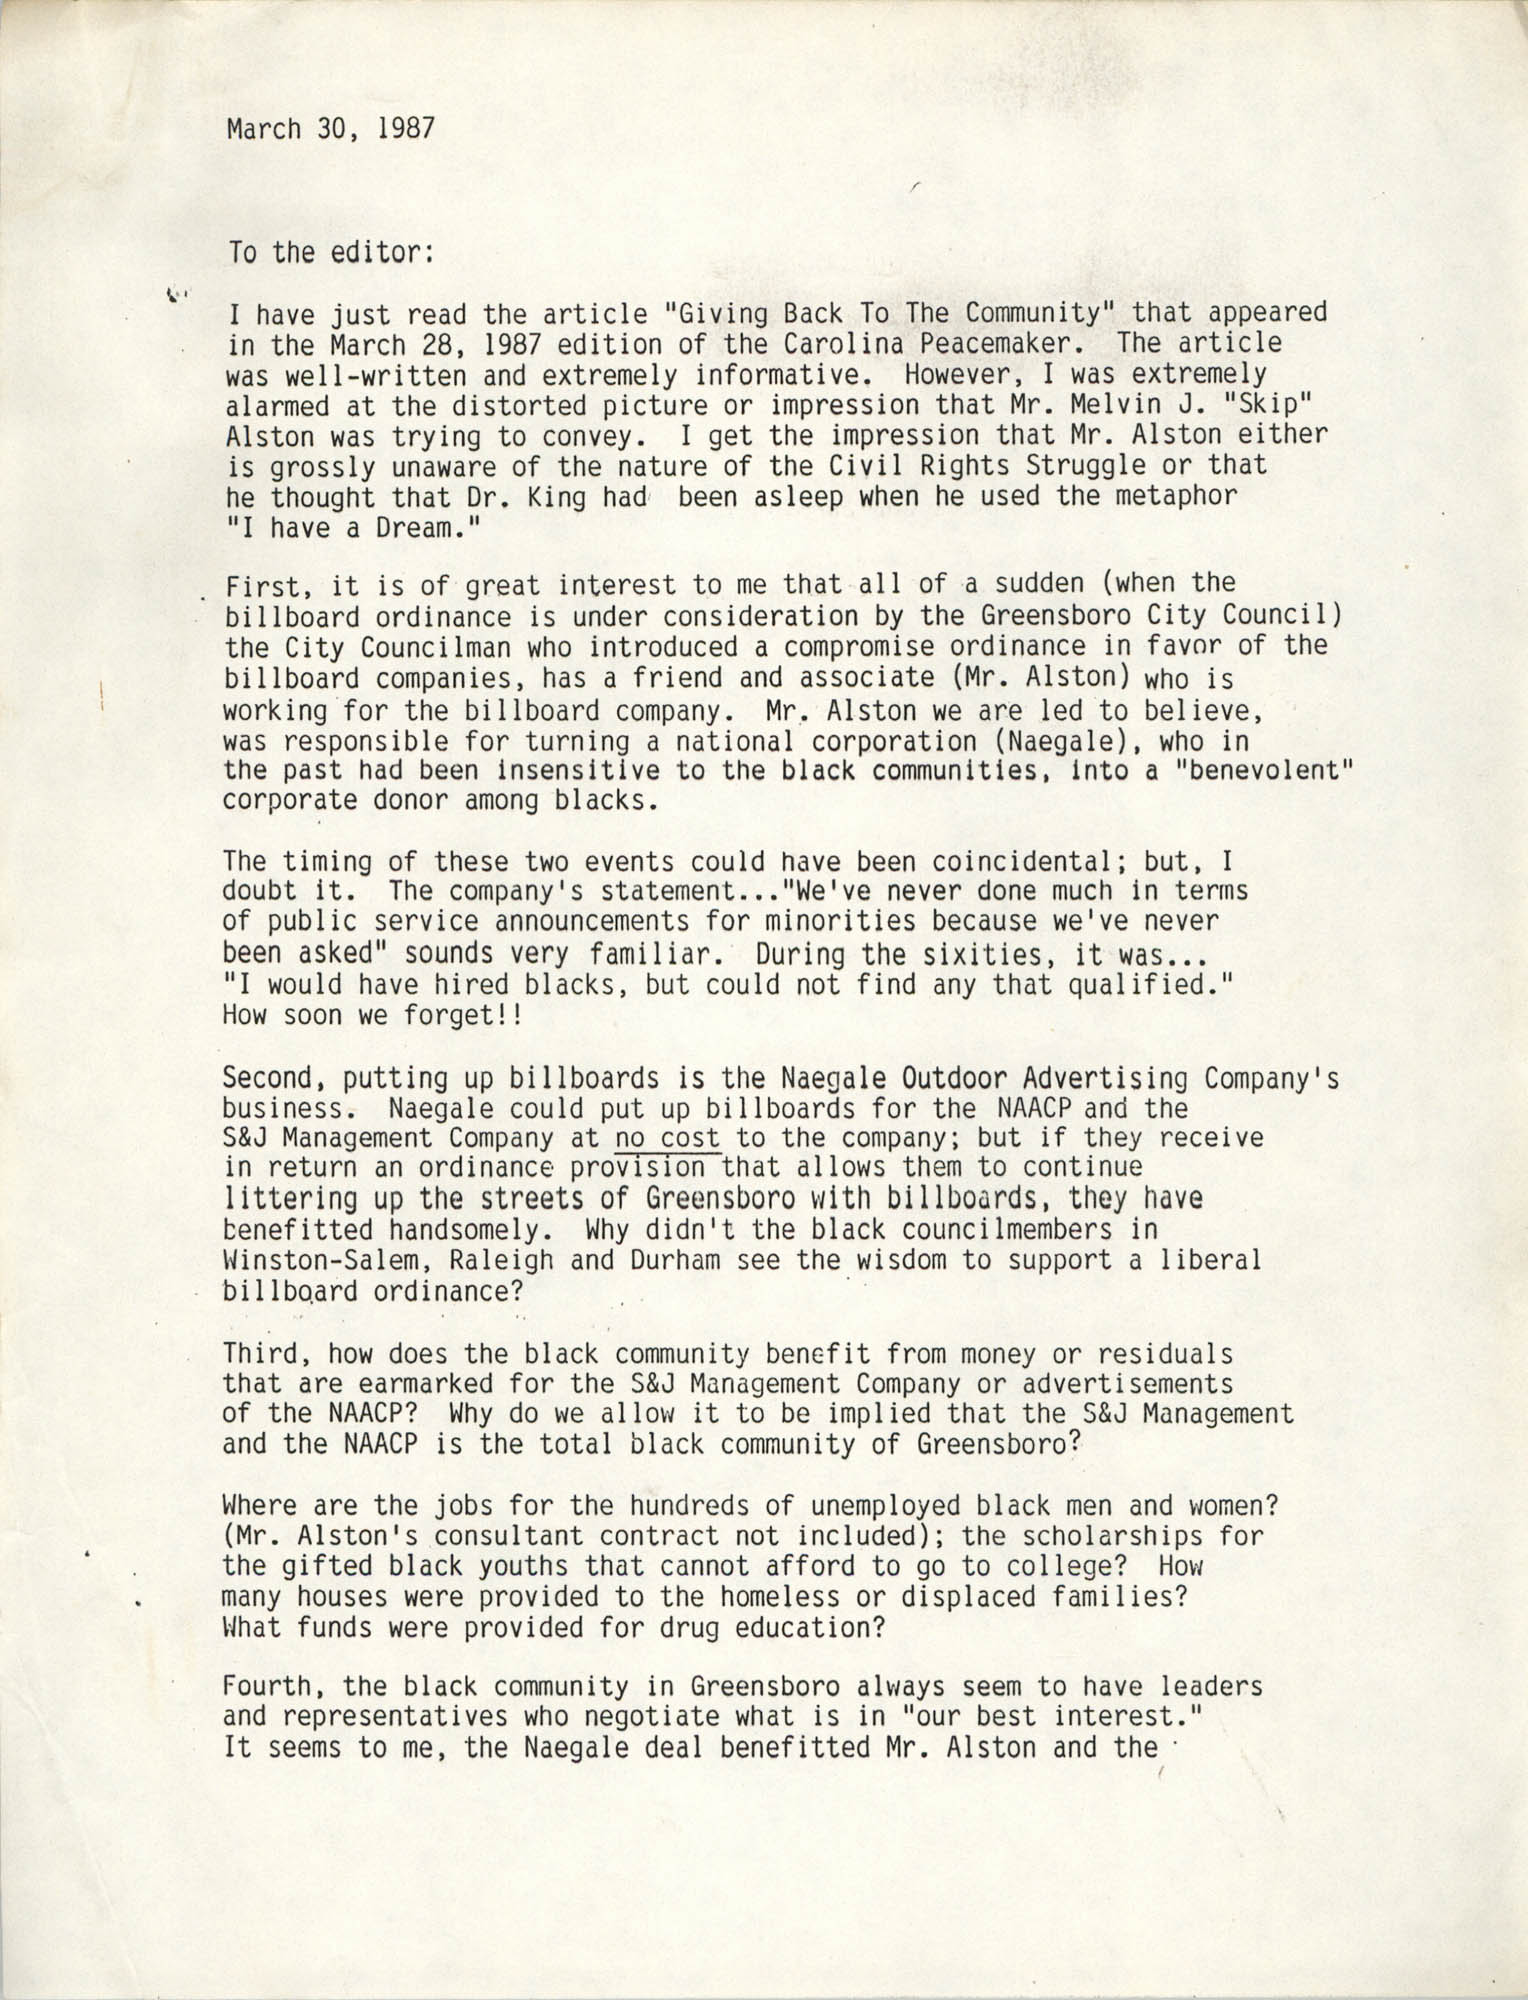 Letter from Malcolm Ross, March 30, 1987